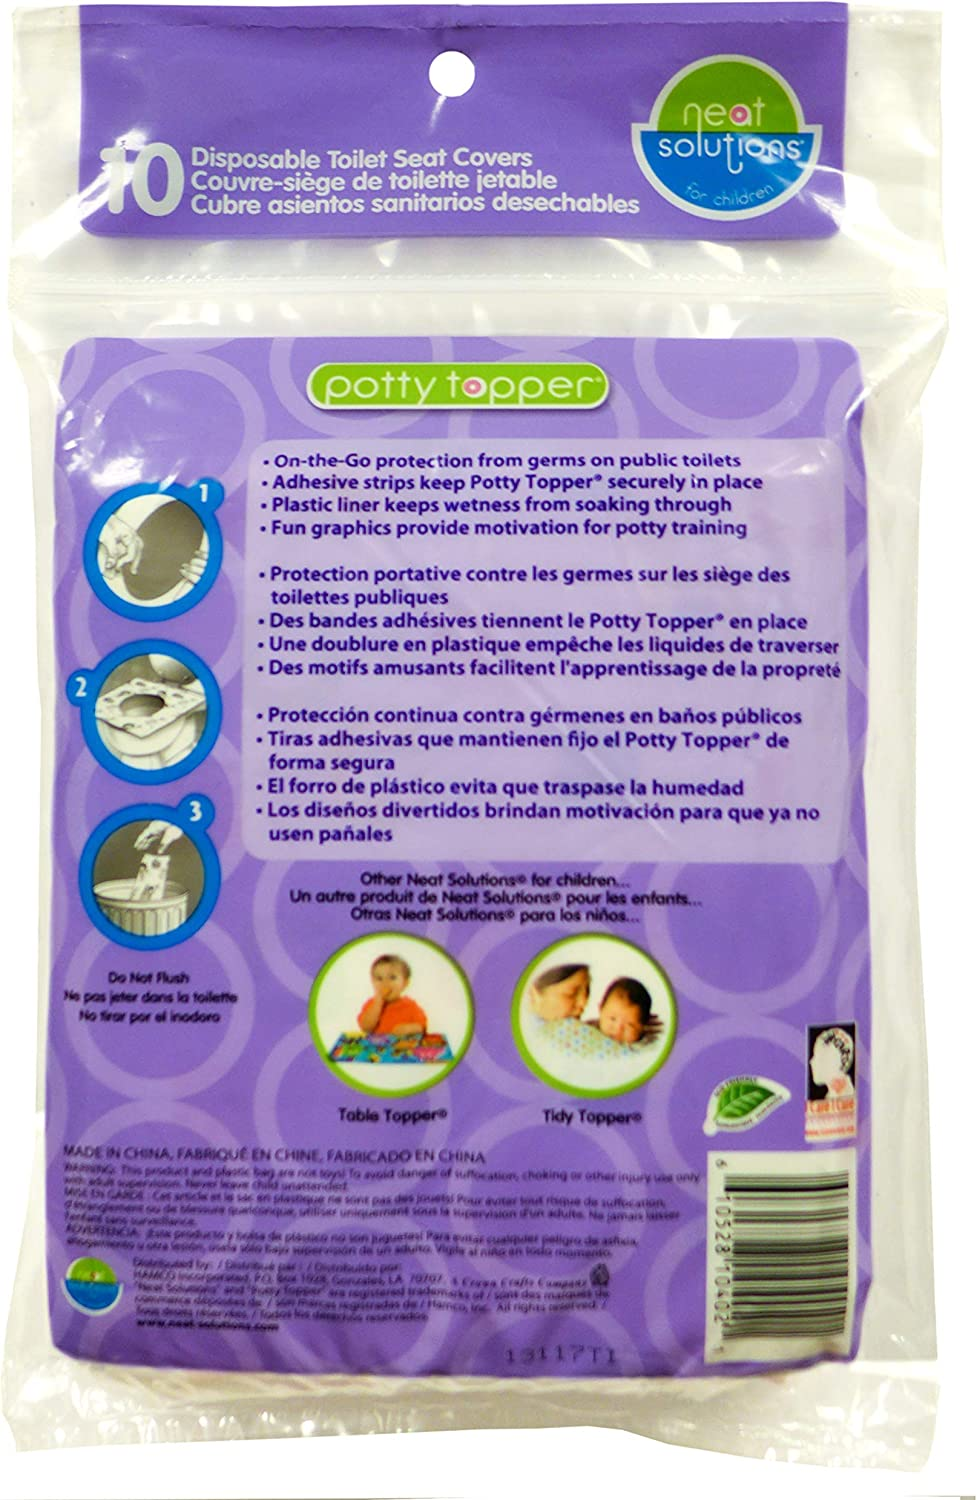 Neat Solutions Potty Topper Disposable Toilet Seat Cover with Adhesive Strips for On-The-Go Protection 10 Count